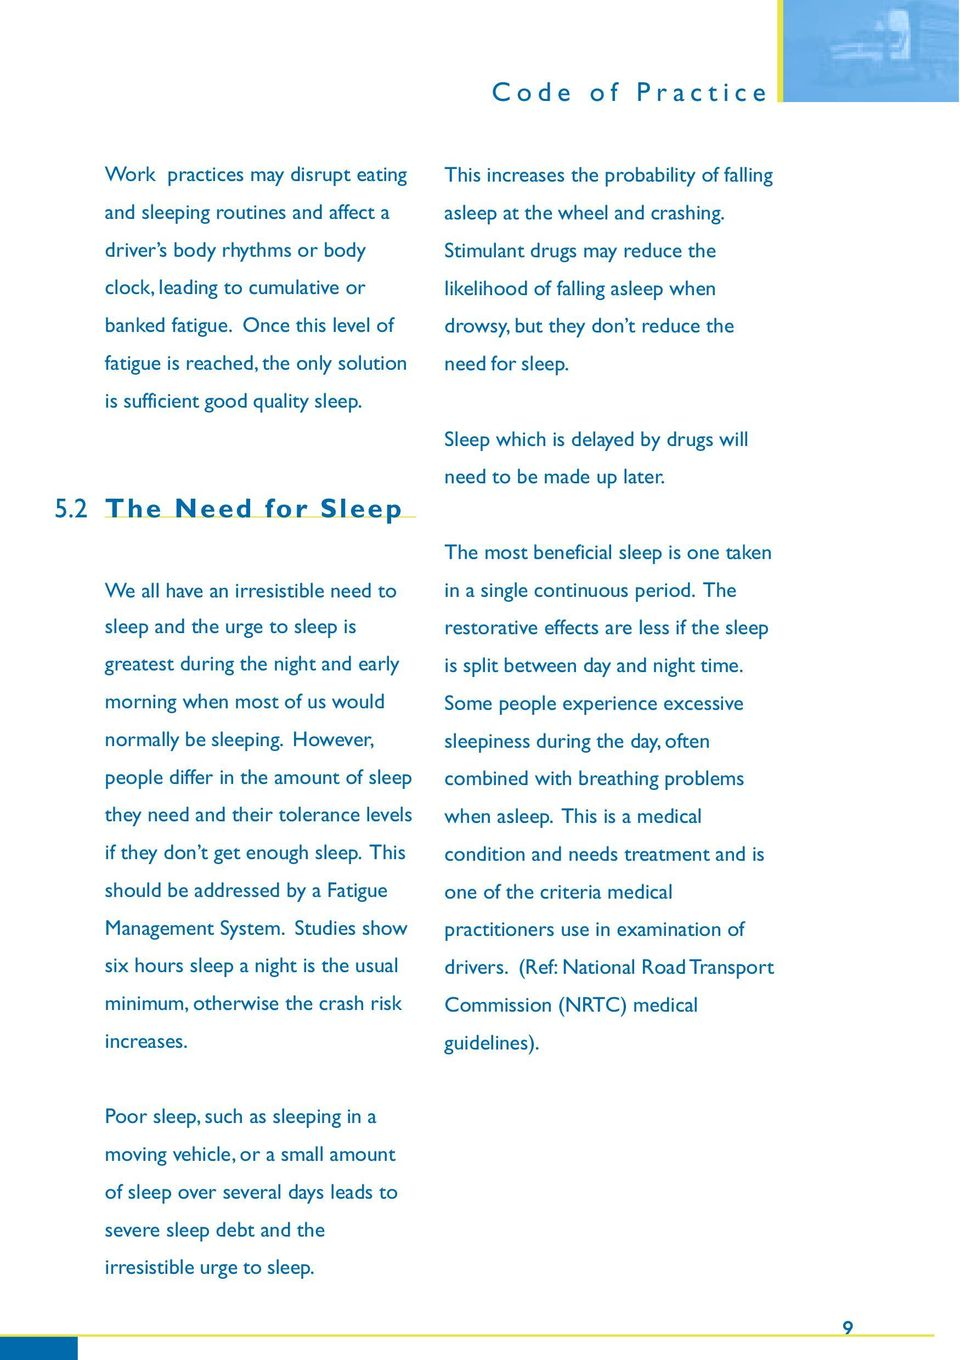 The Need for Sleep We all have an irresistible need to sleep and the urge to sleep is greatest during the night and early morning when most of us would normally be sleeping.